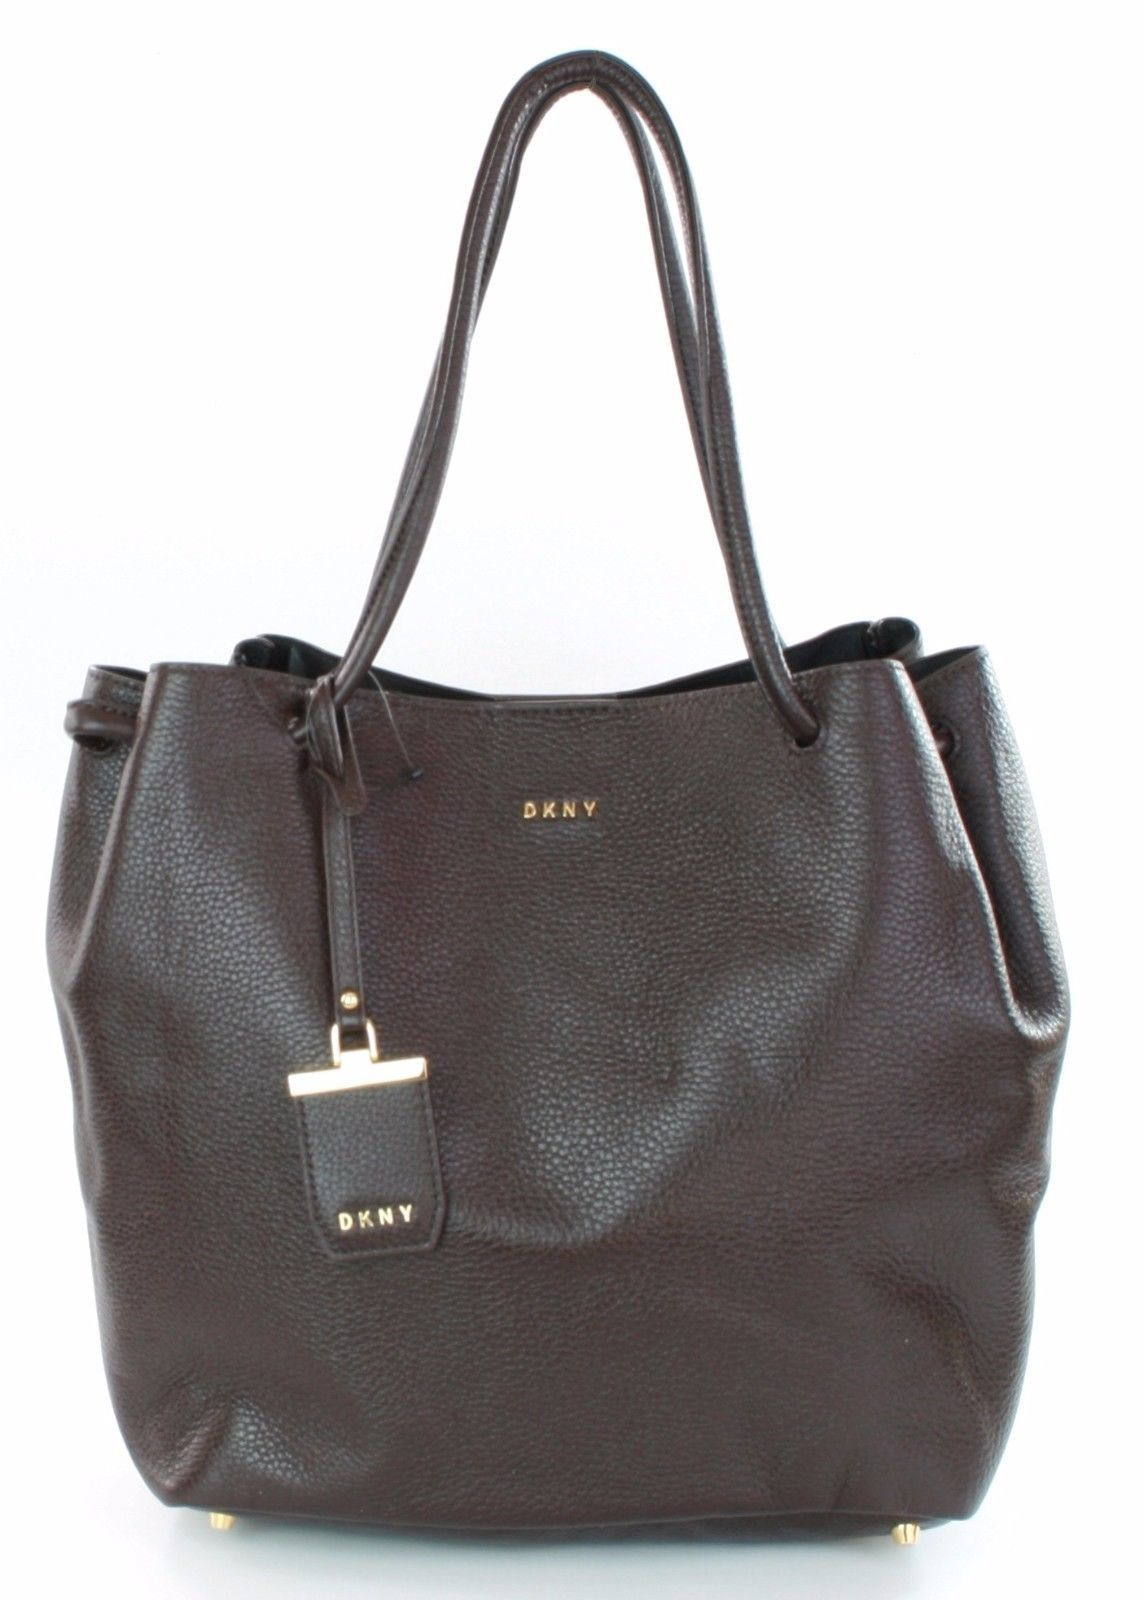 Primary image for DKNY Donna Karan Dark Brown Leather Shoulder Bag Medium Handbag RRP £315